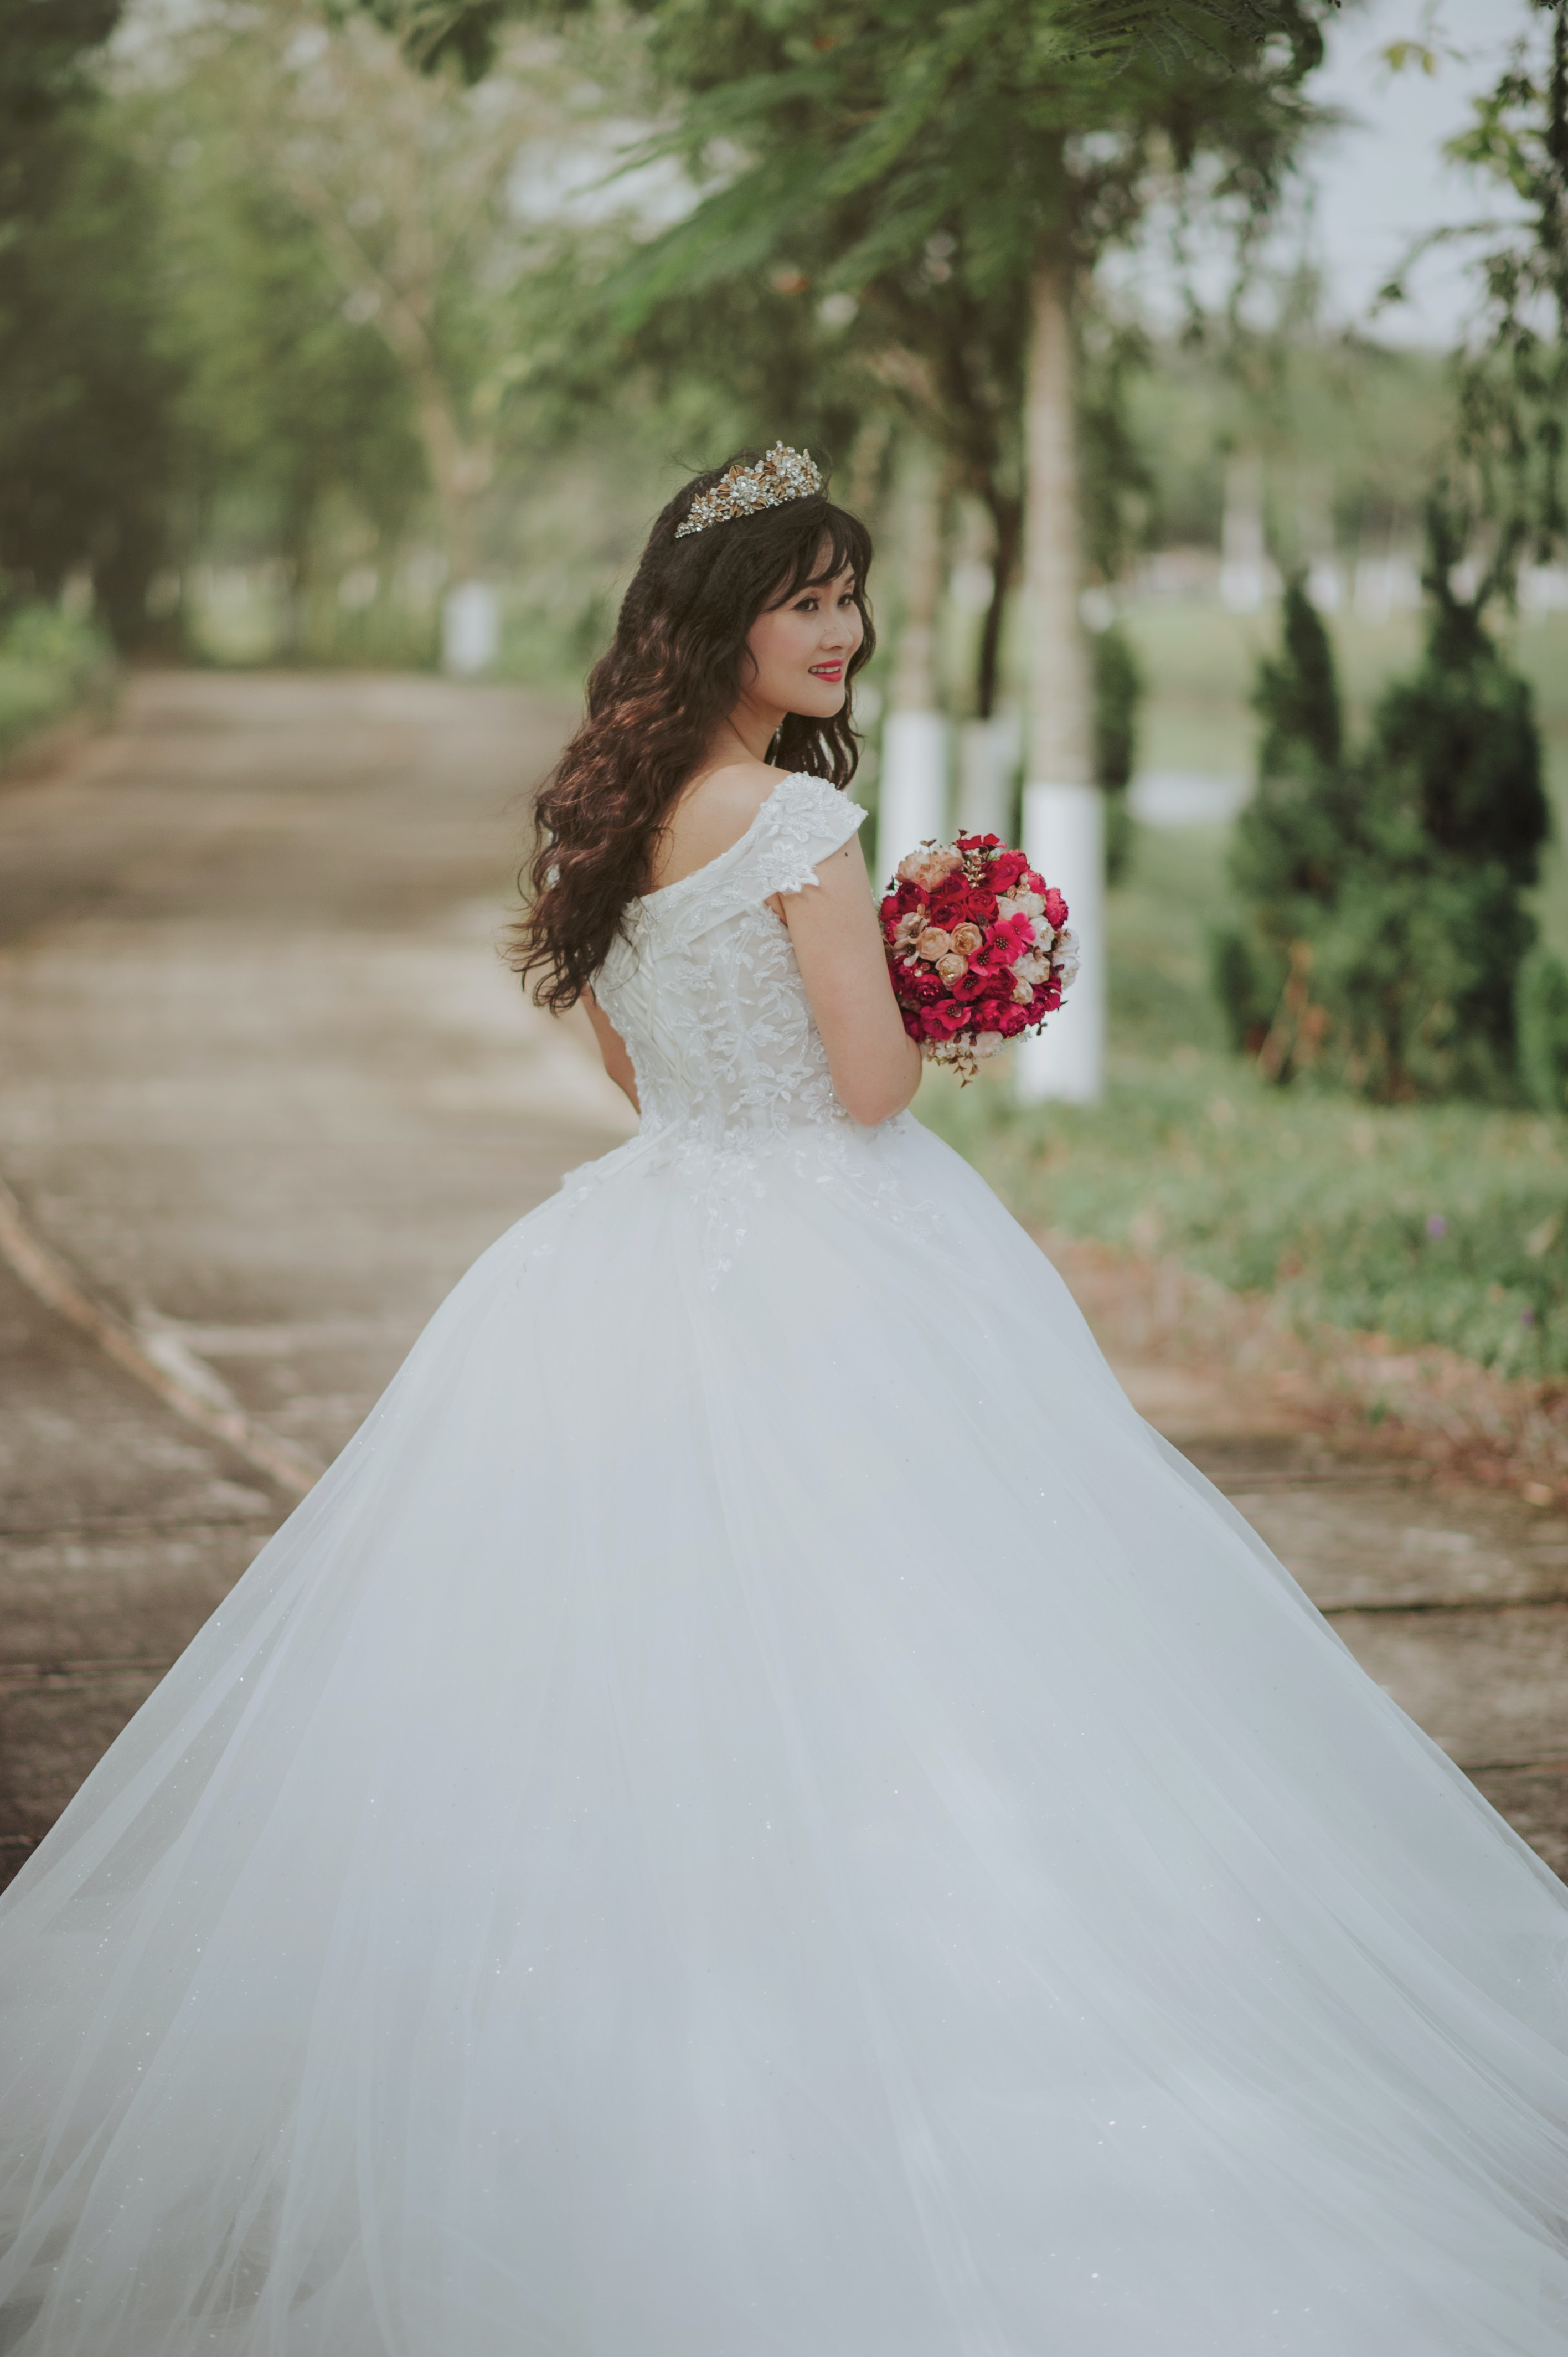 Photo Of A Woman In Her Wedding Dress 183 Free Stock Photo